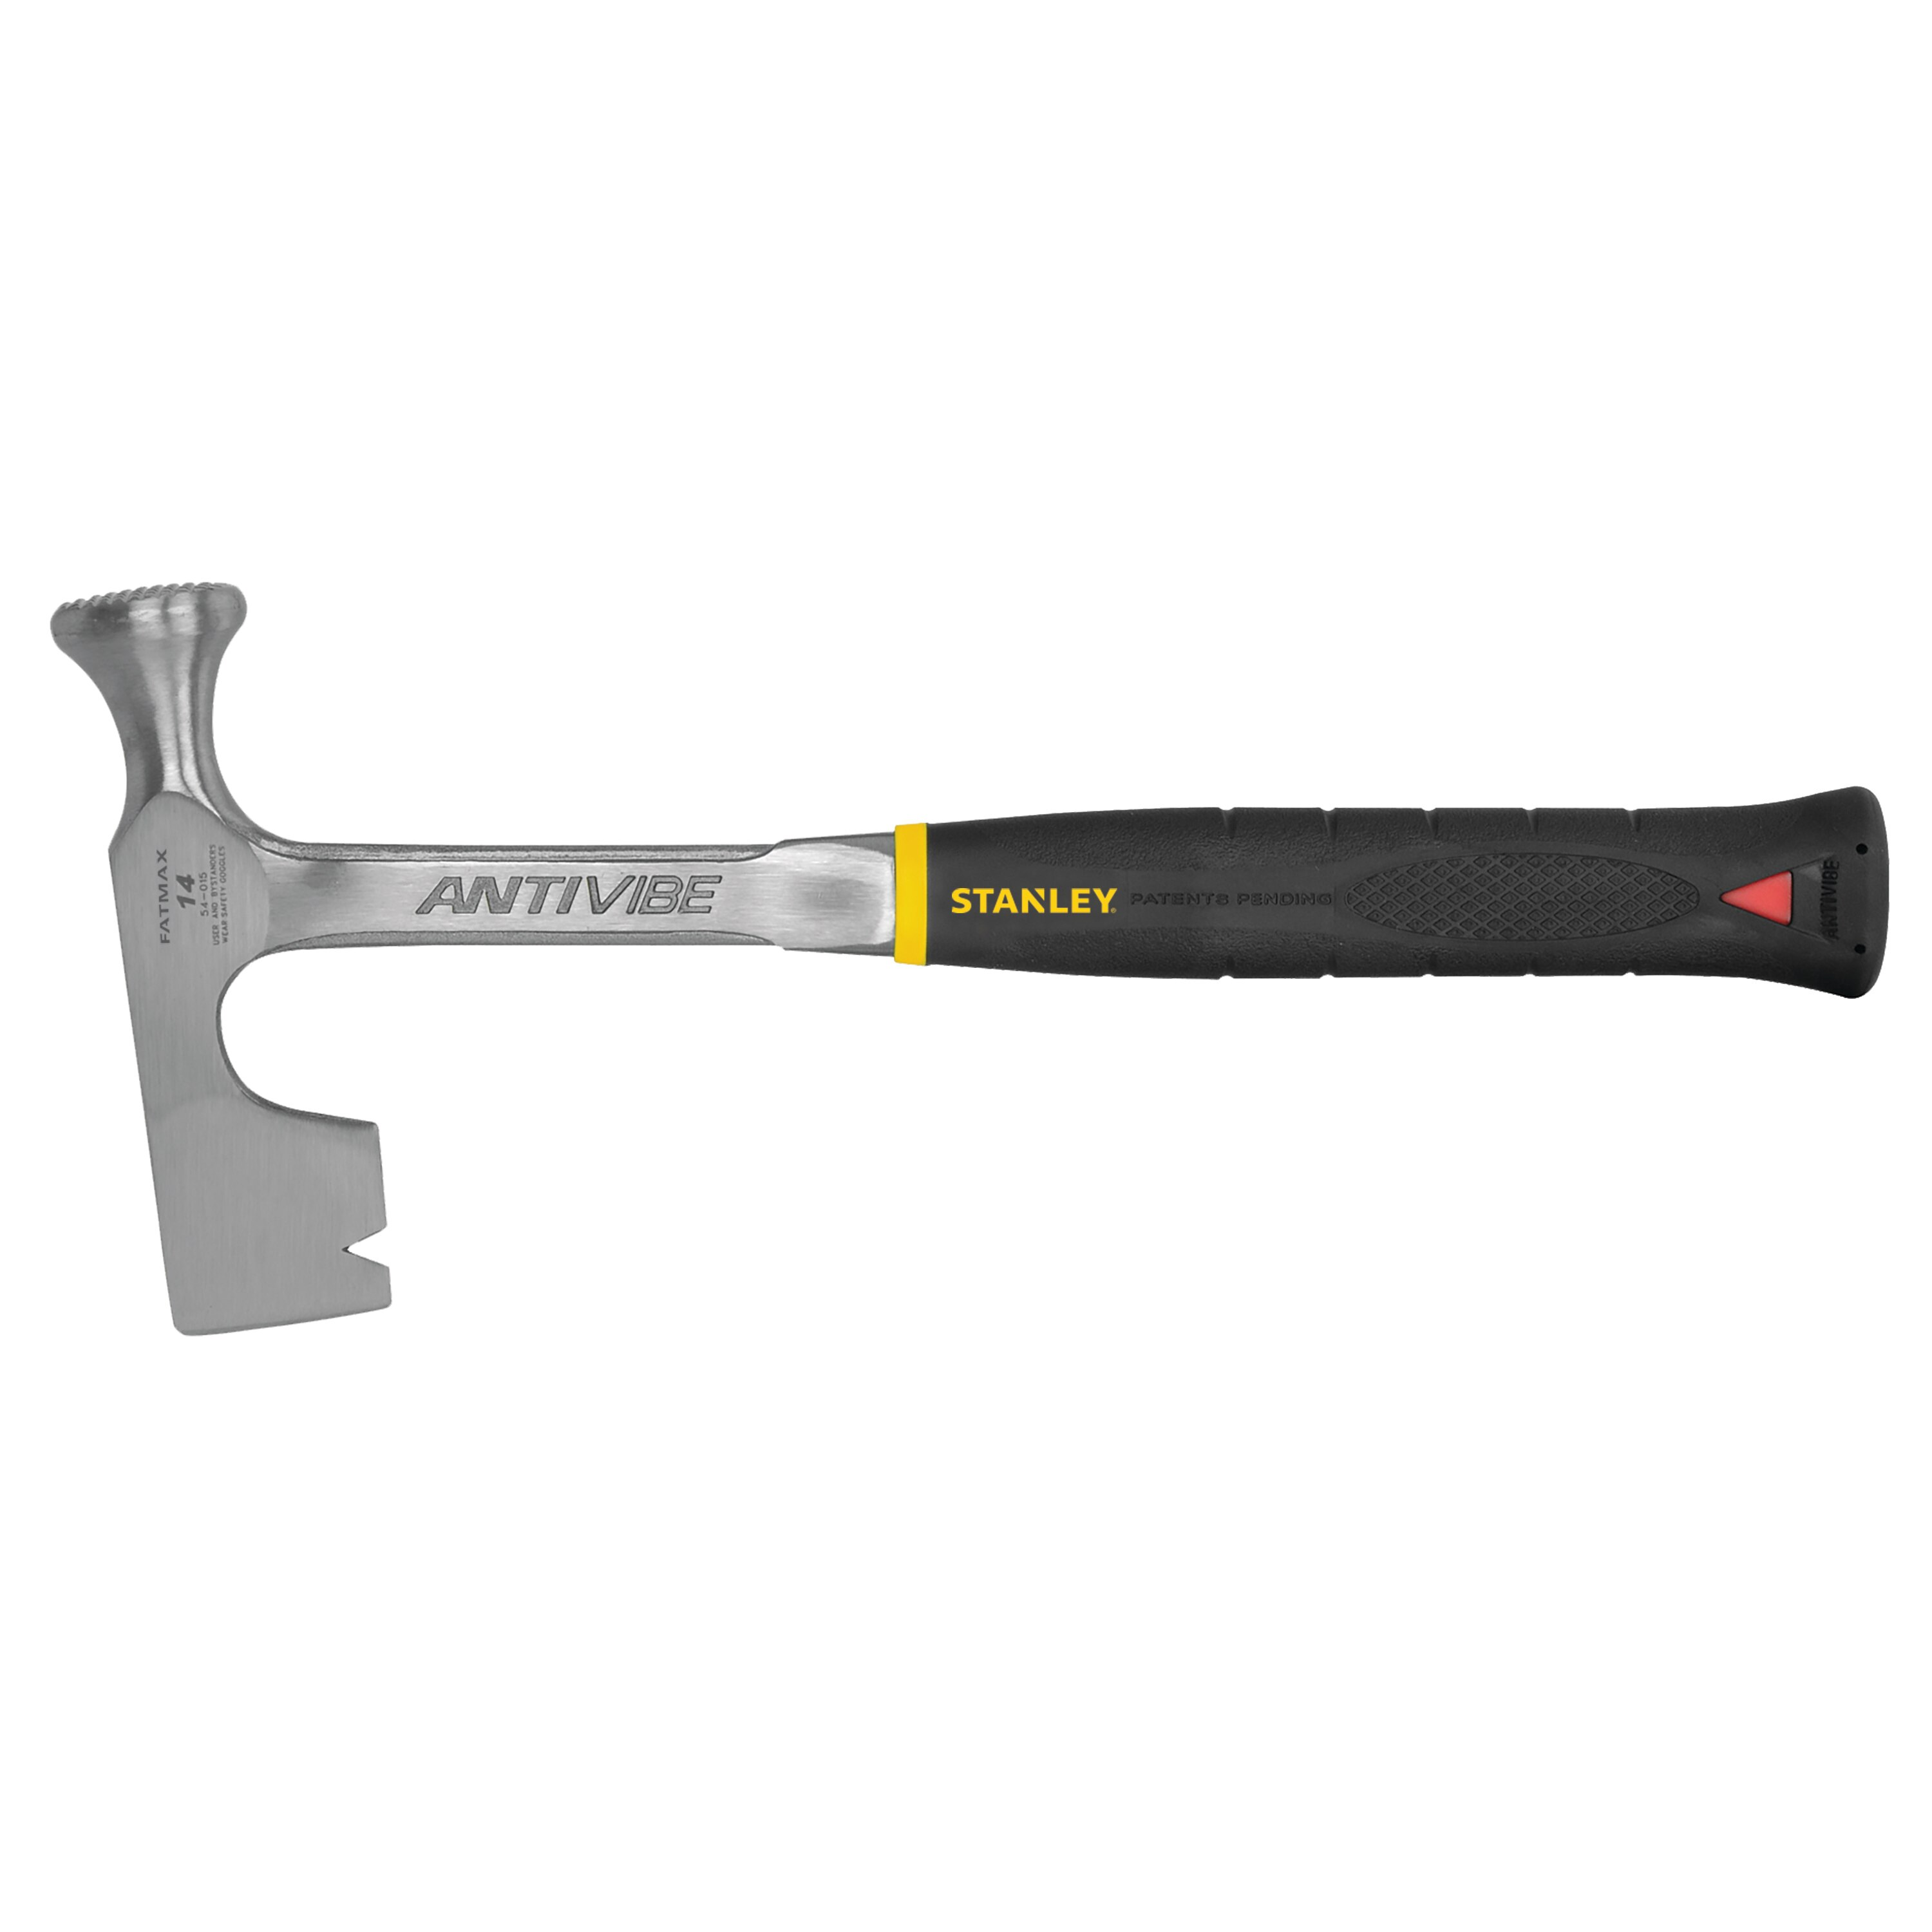 Stanley Tools - 14 oz FATMAX AntiVibe Drywall Hammer - 54-015